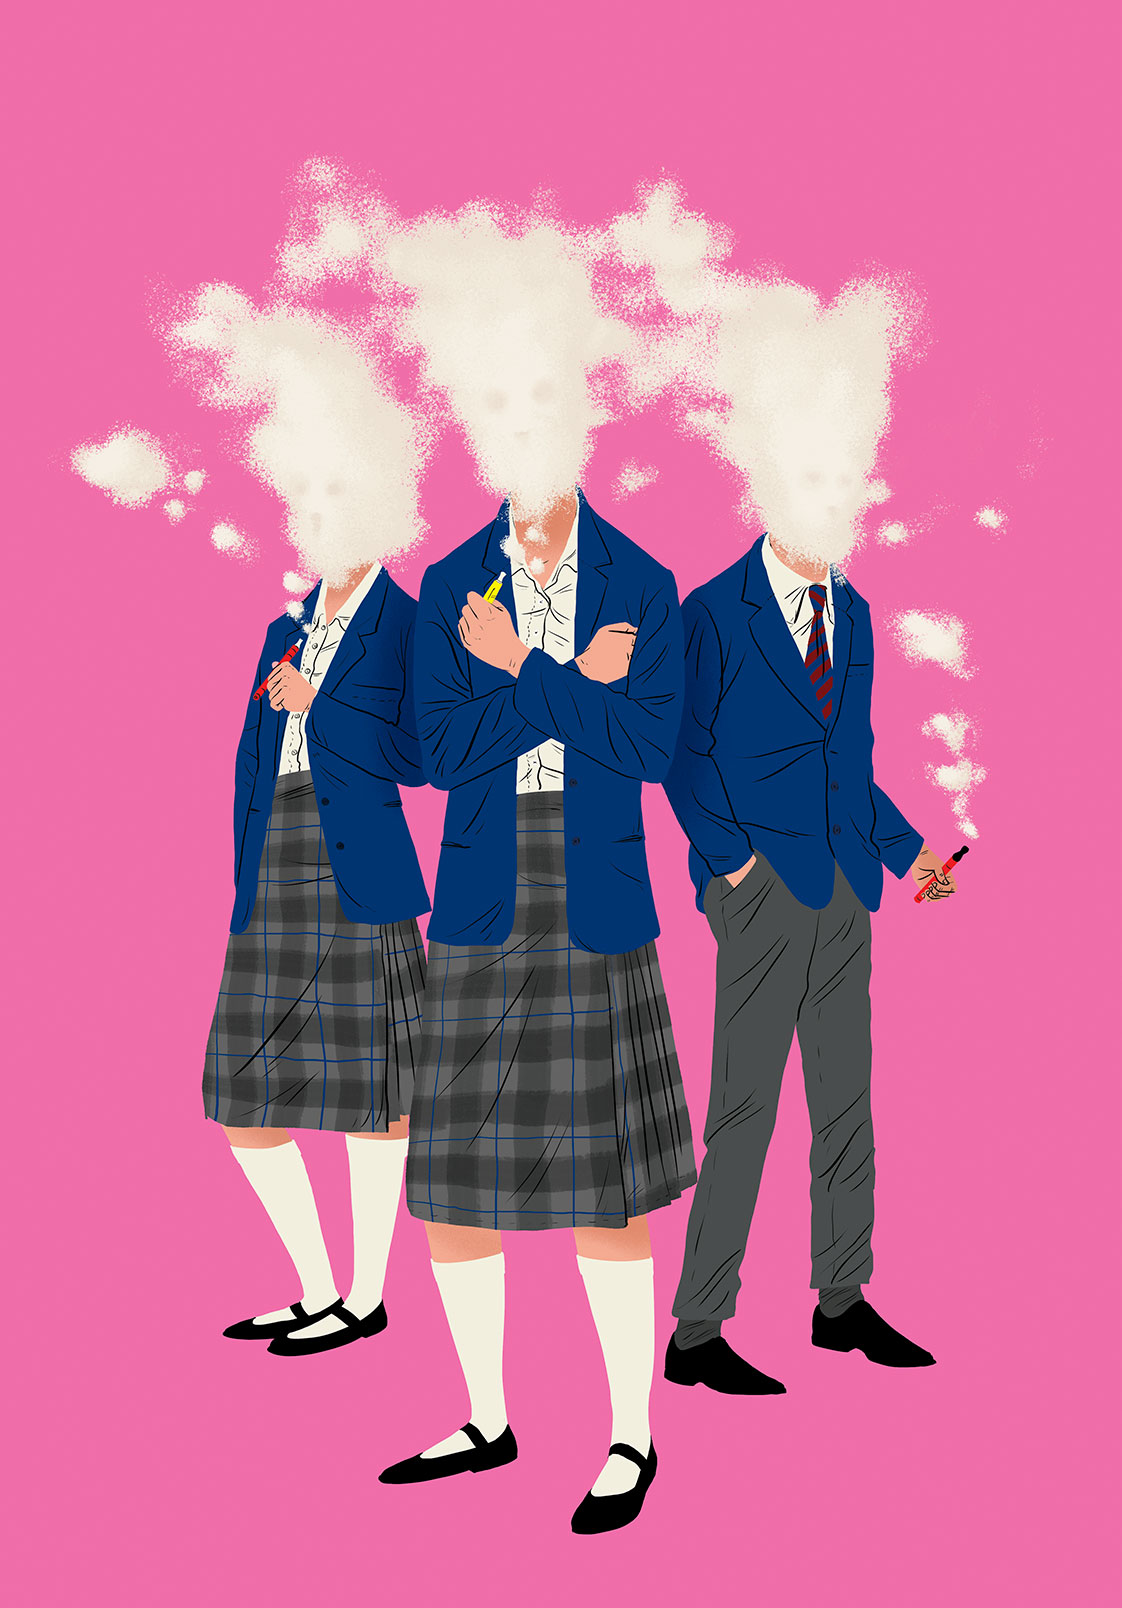 Children vaping illustration by Paul Blow